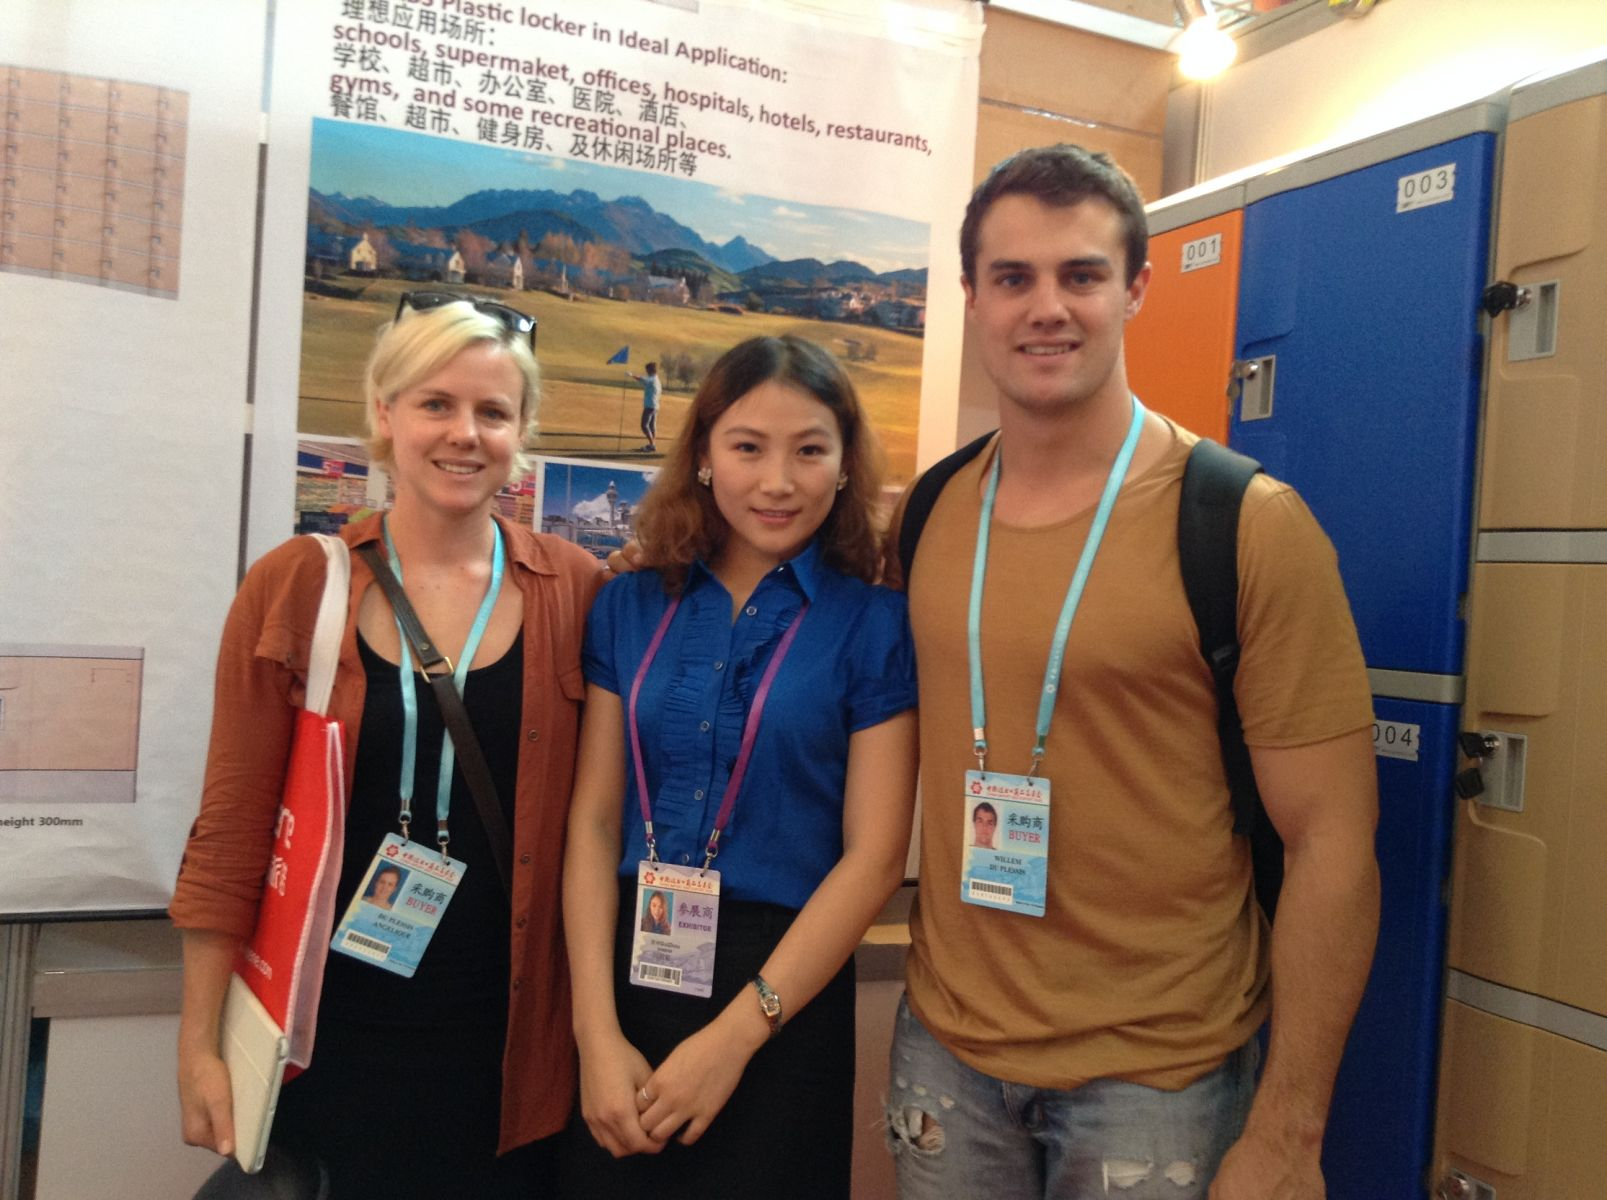 Top Lockers Attended 3rd Phase 114th Canton Fair